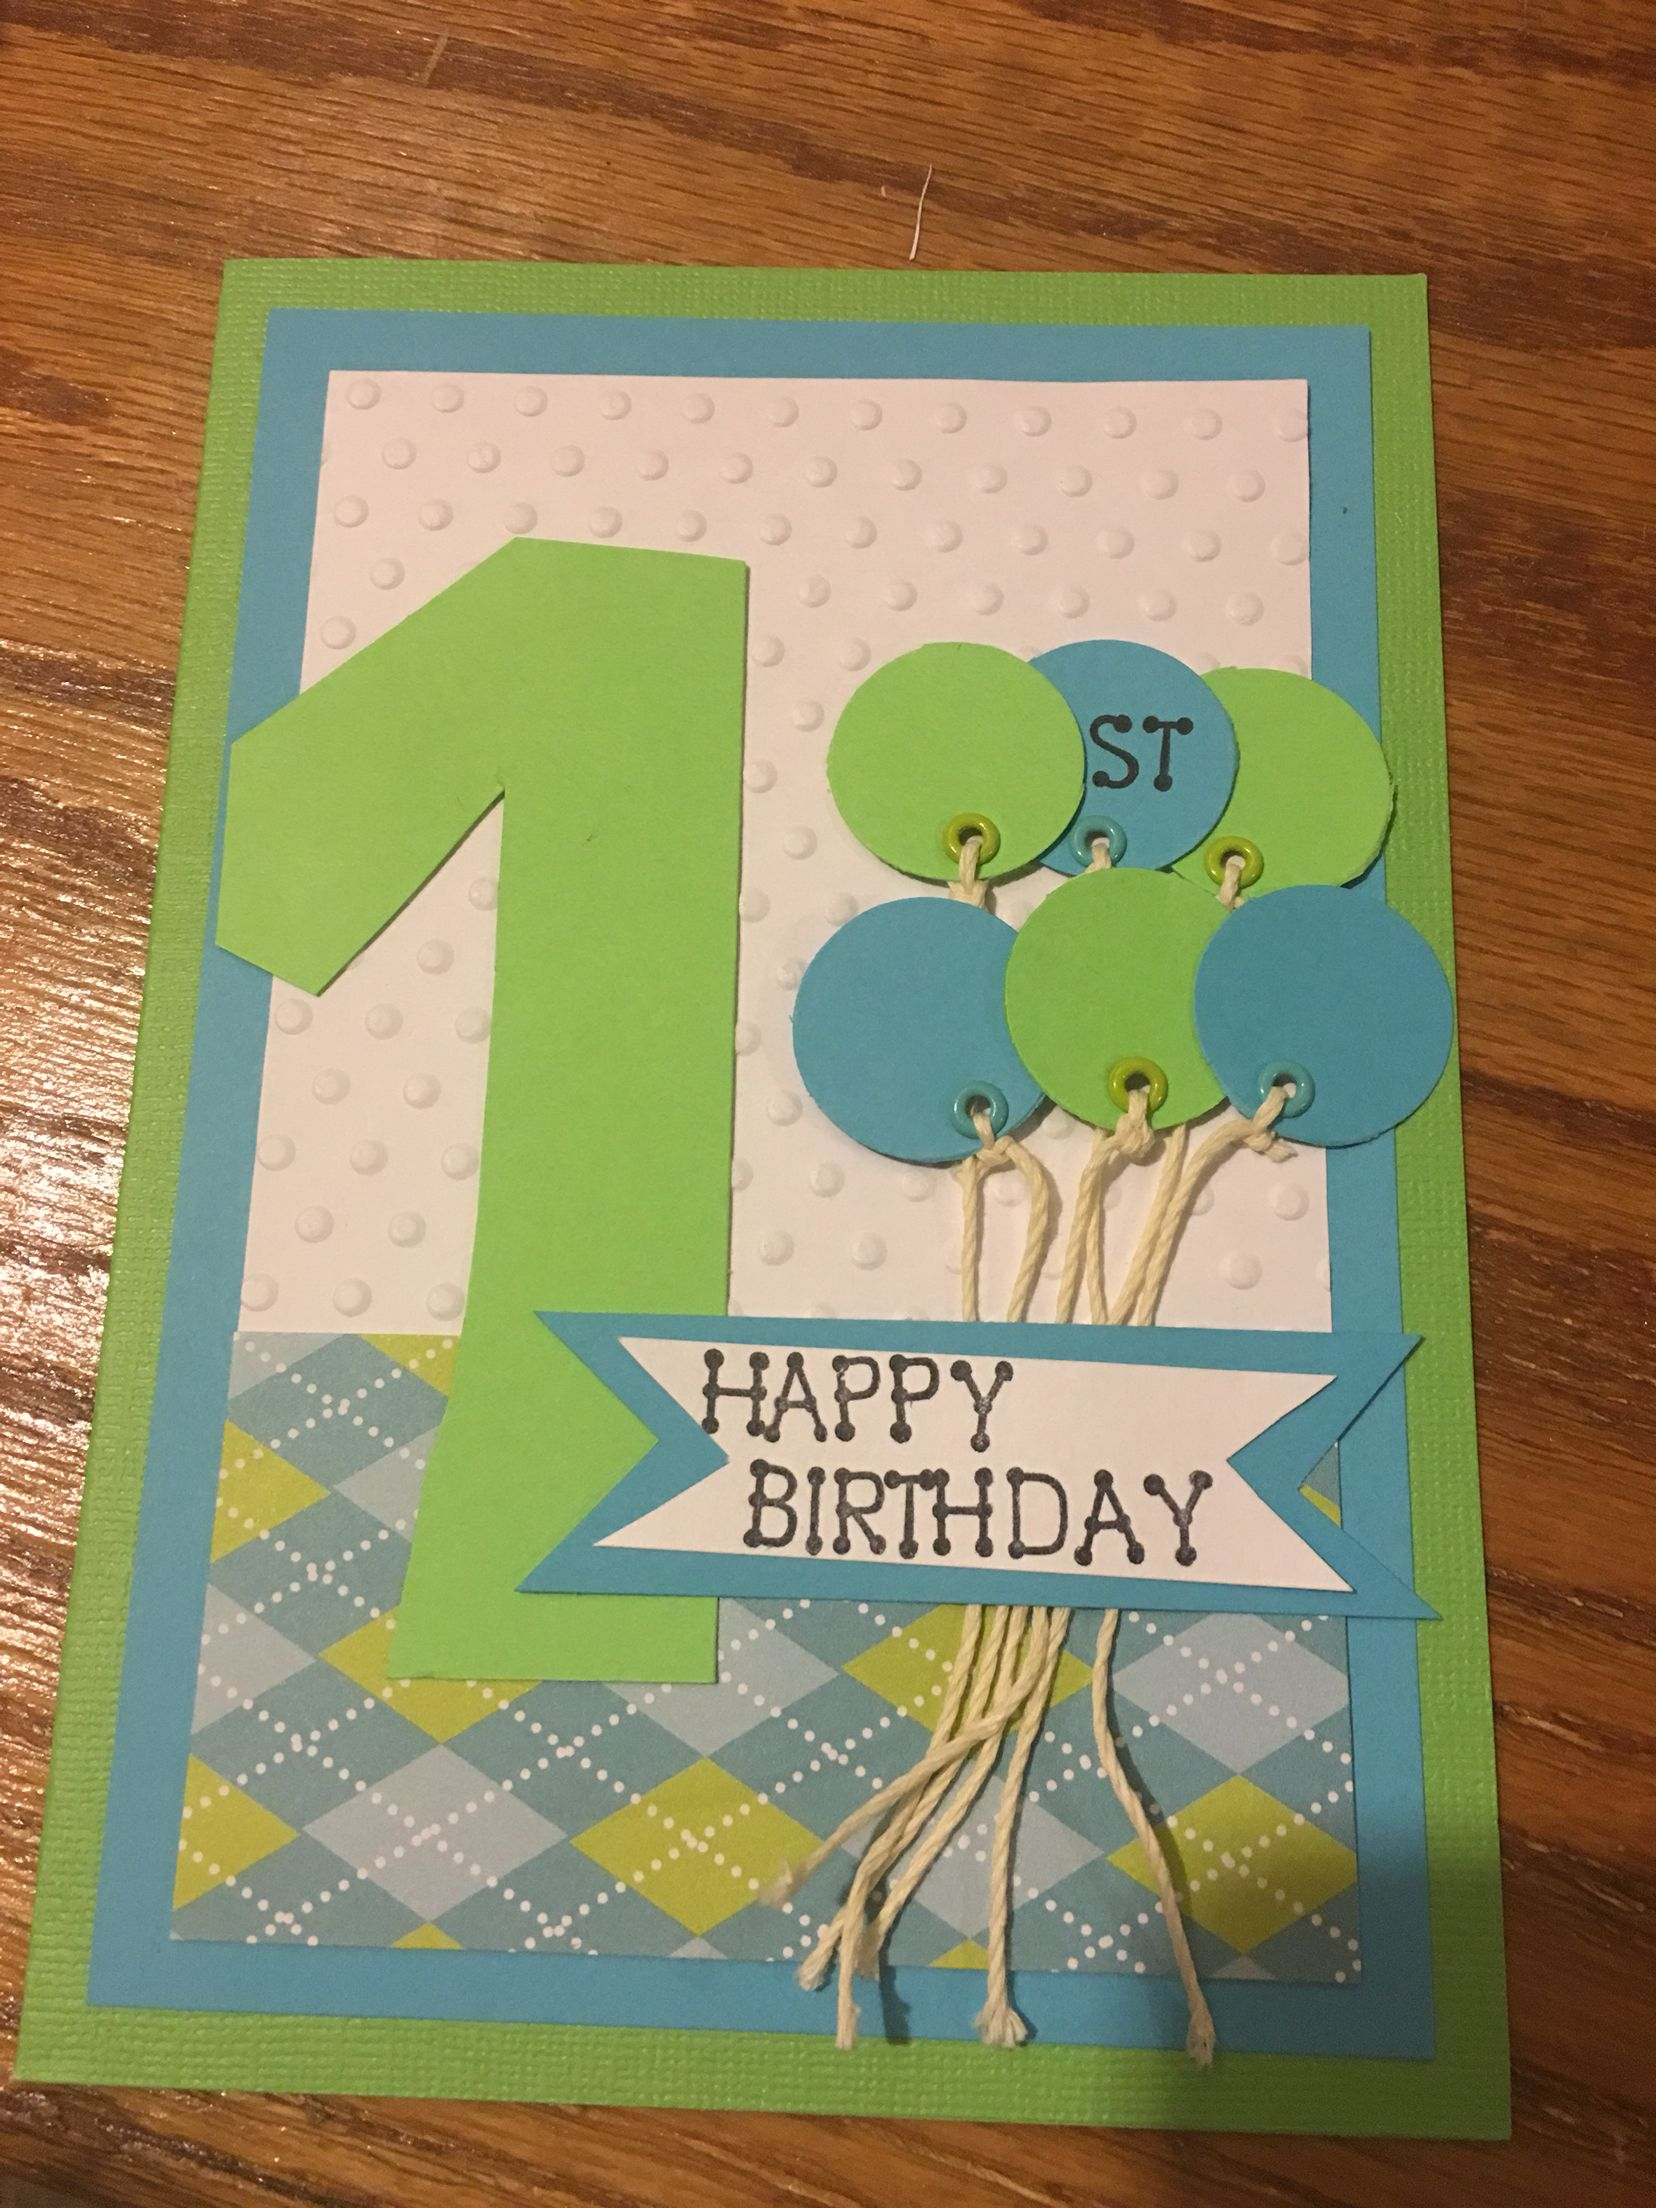 One Year Old Little Boy Birthday Card